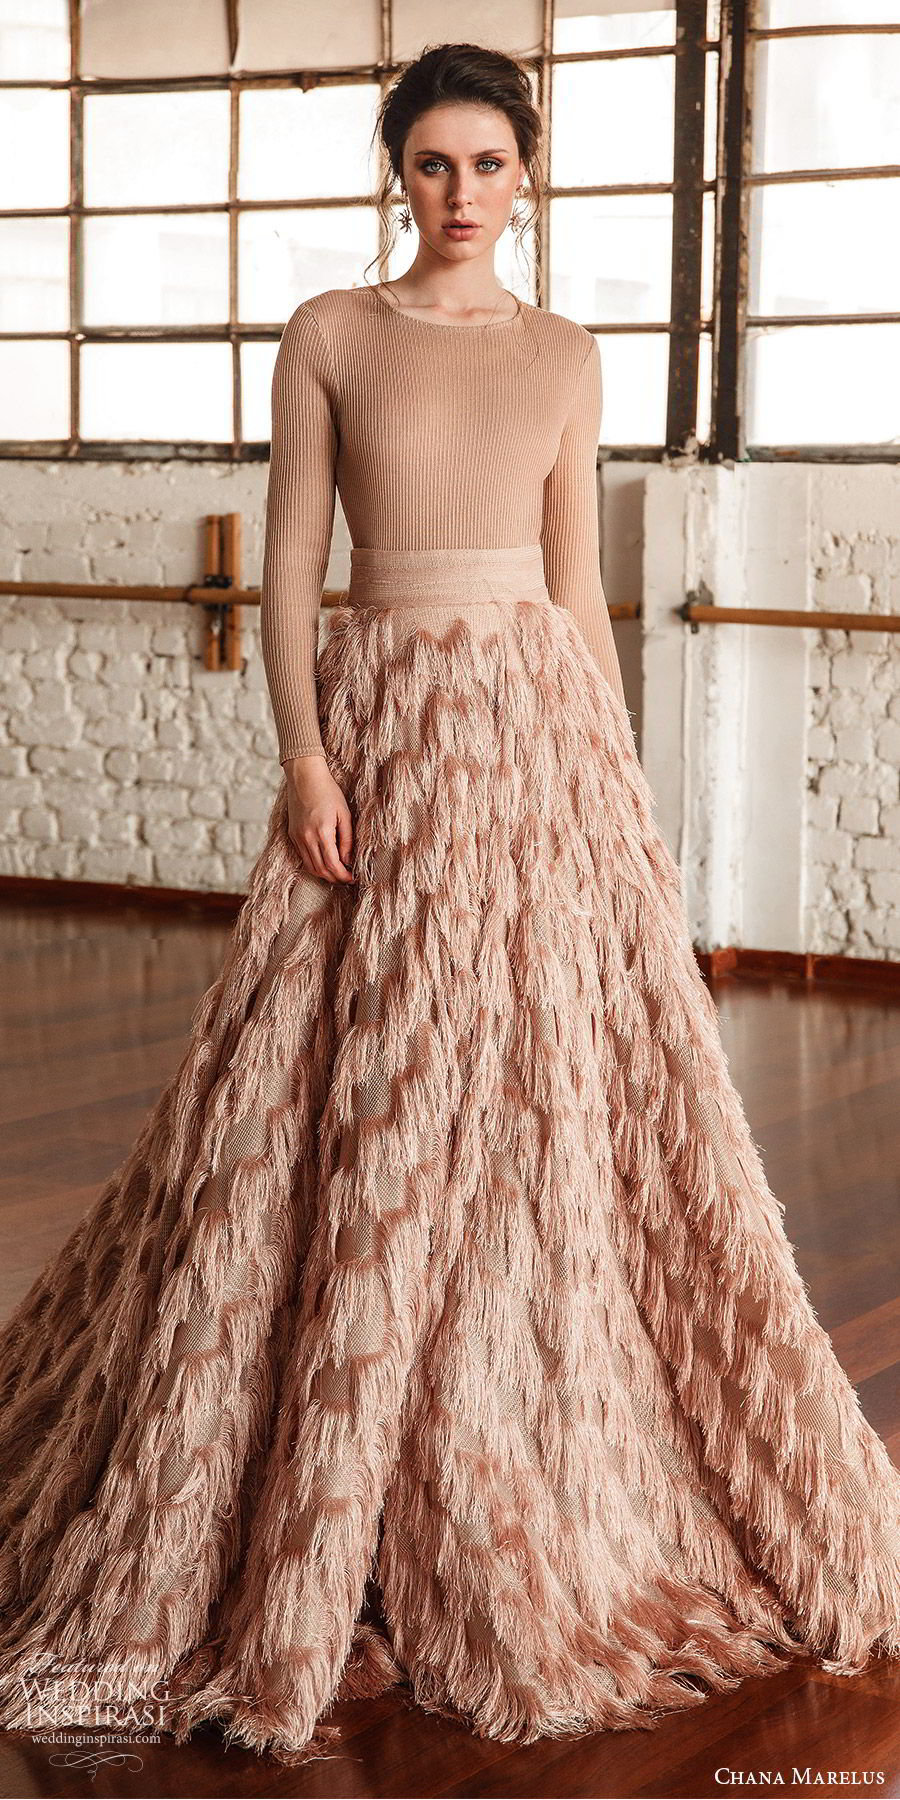 chana marelus fall 2019 bridal long sleeves jewel neck feather skirt a line ball gown wedding dress (8) modern chic blush color sweep train  mv